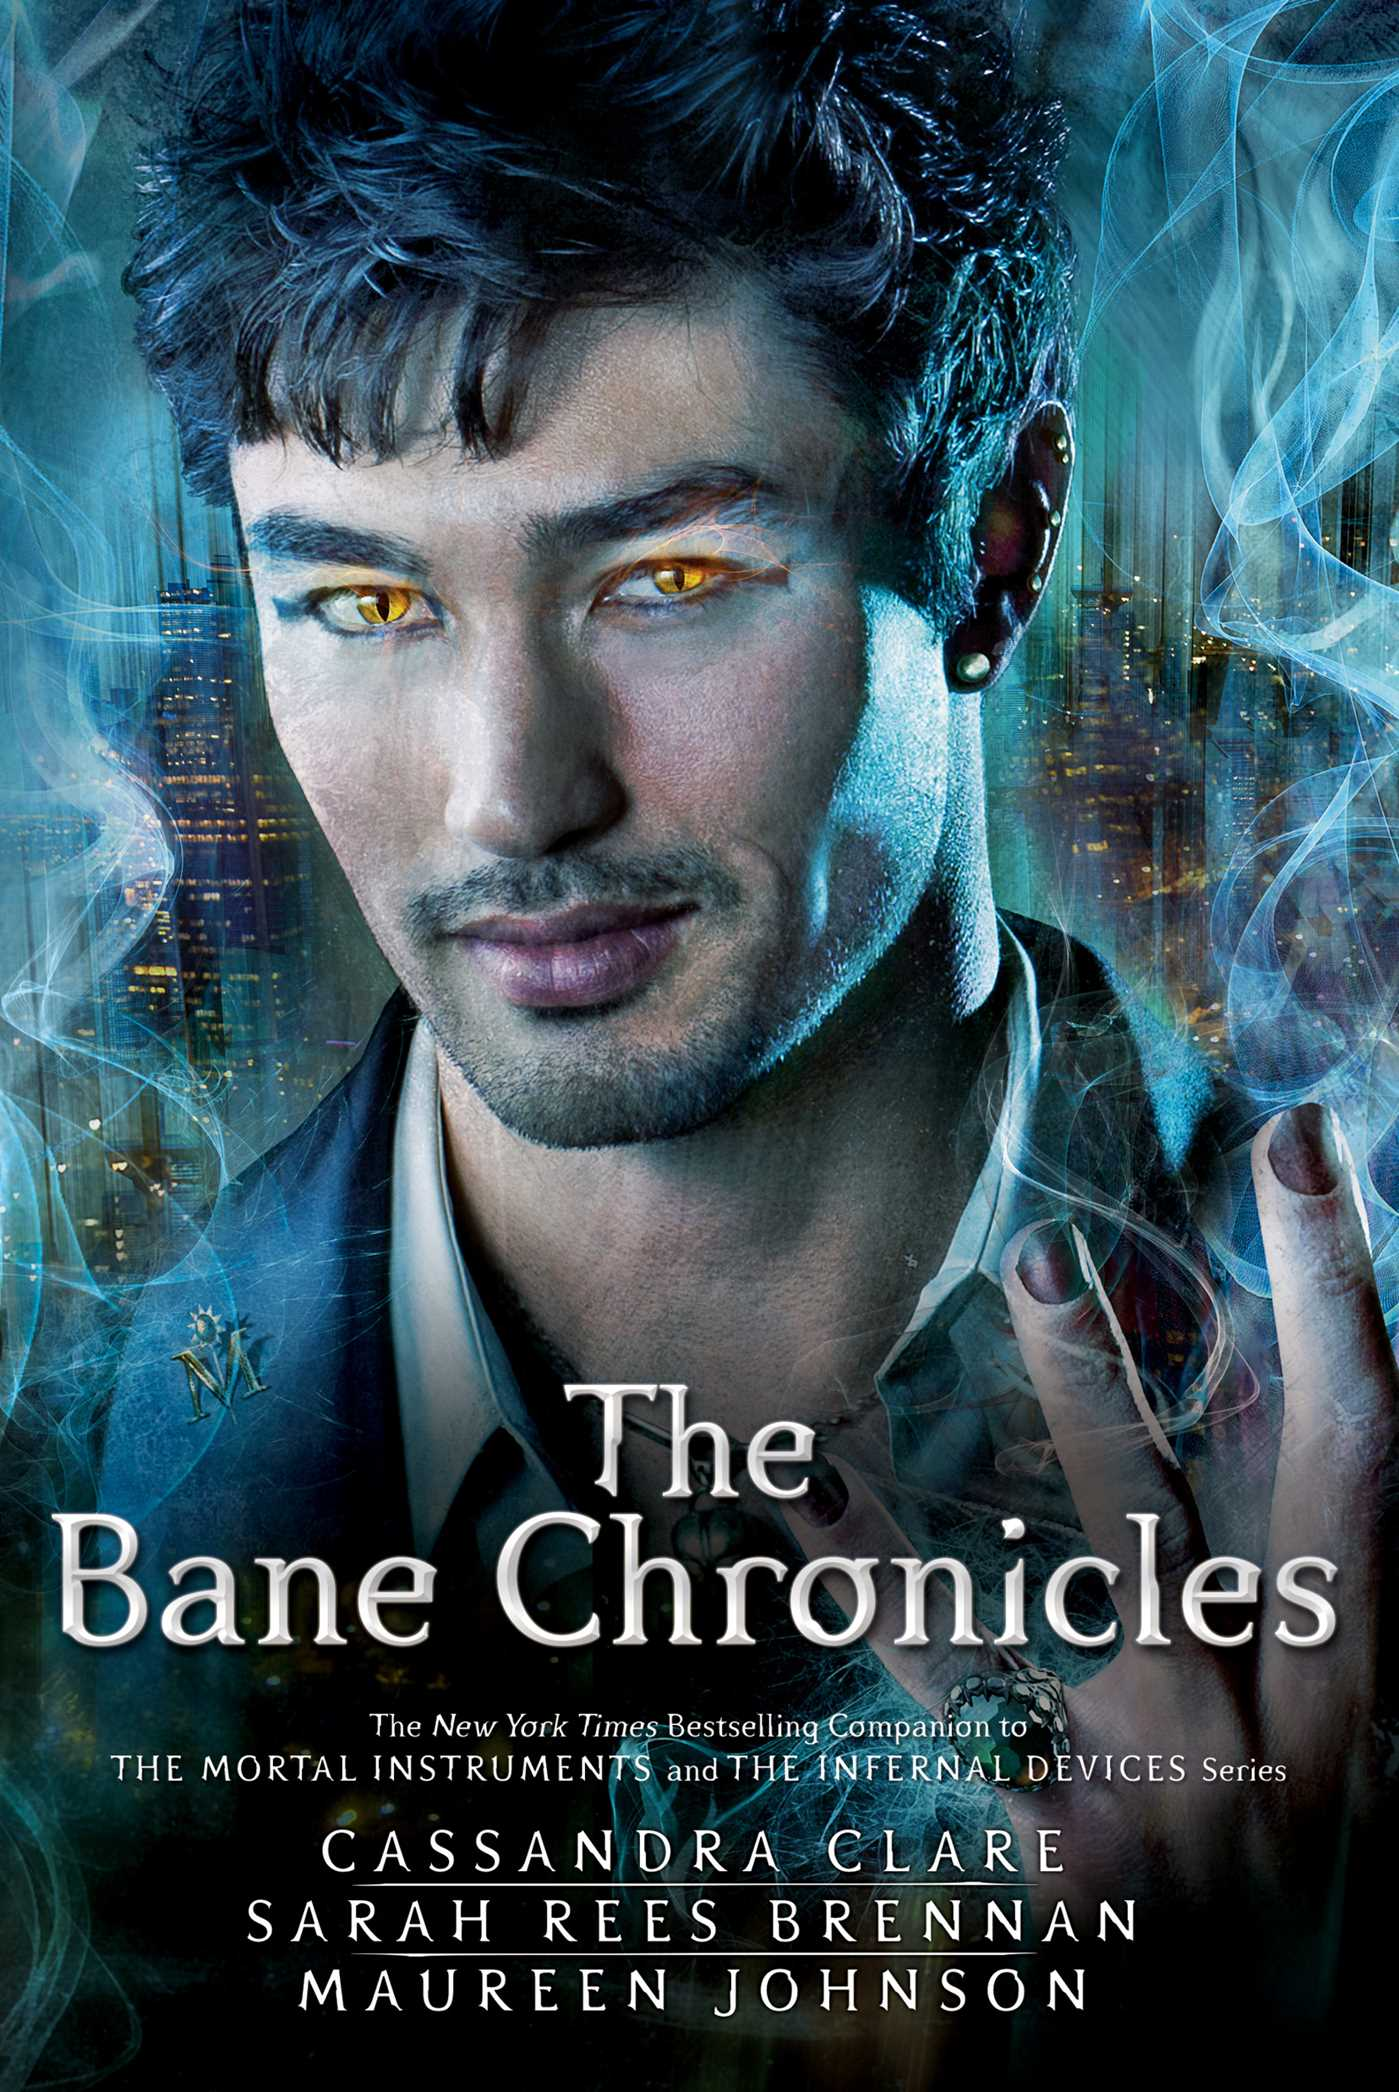 The bane chronicles 9781442495661 hr